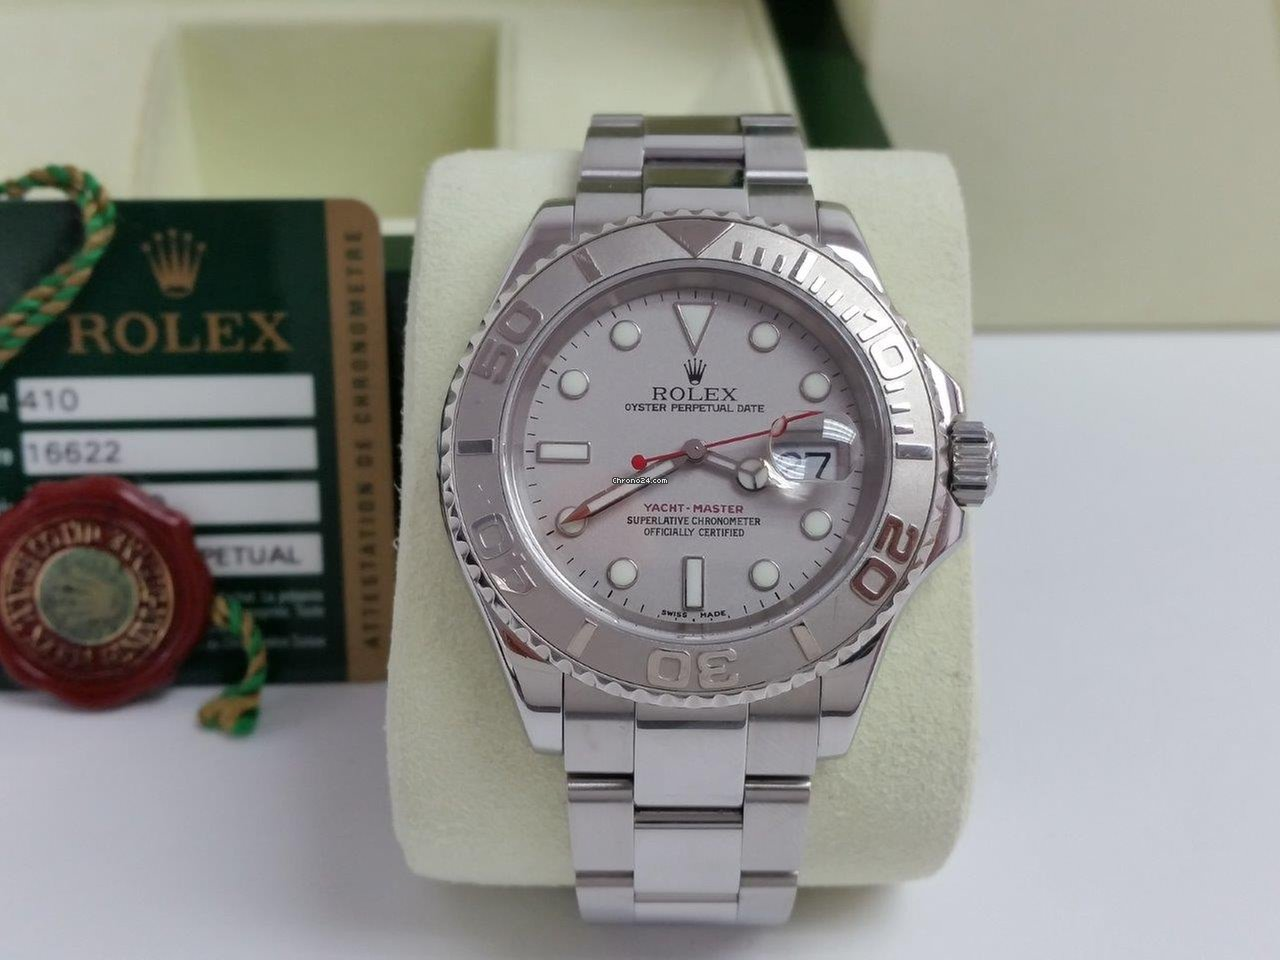 937bded791d Rolex Yacht-Master 40mm Platinum Dial Bezel 2008 Box Warranty Card